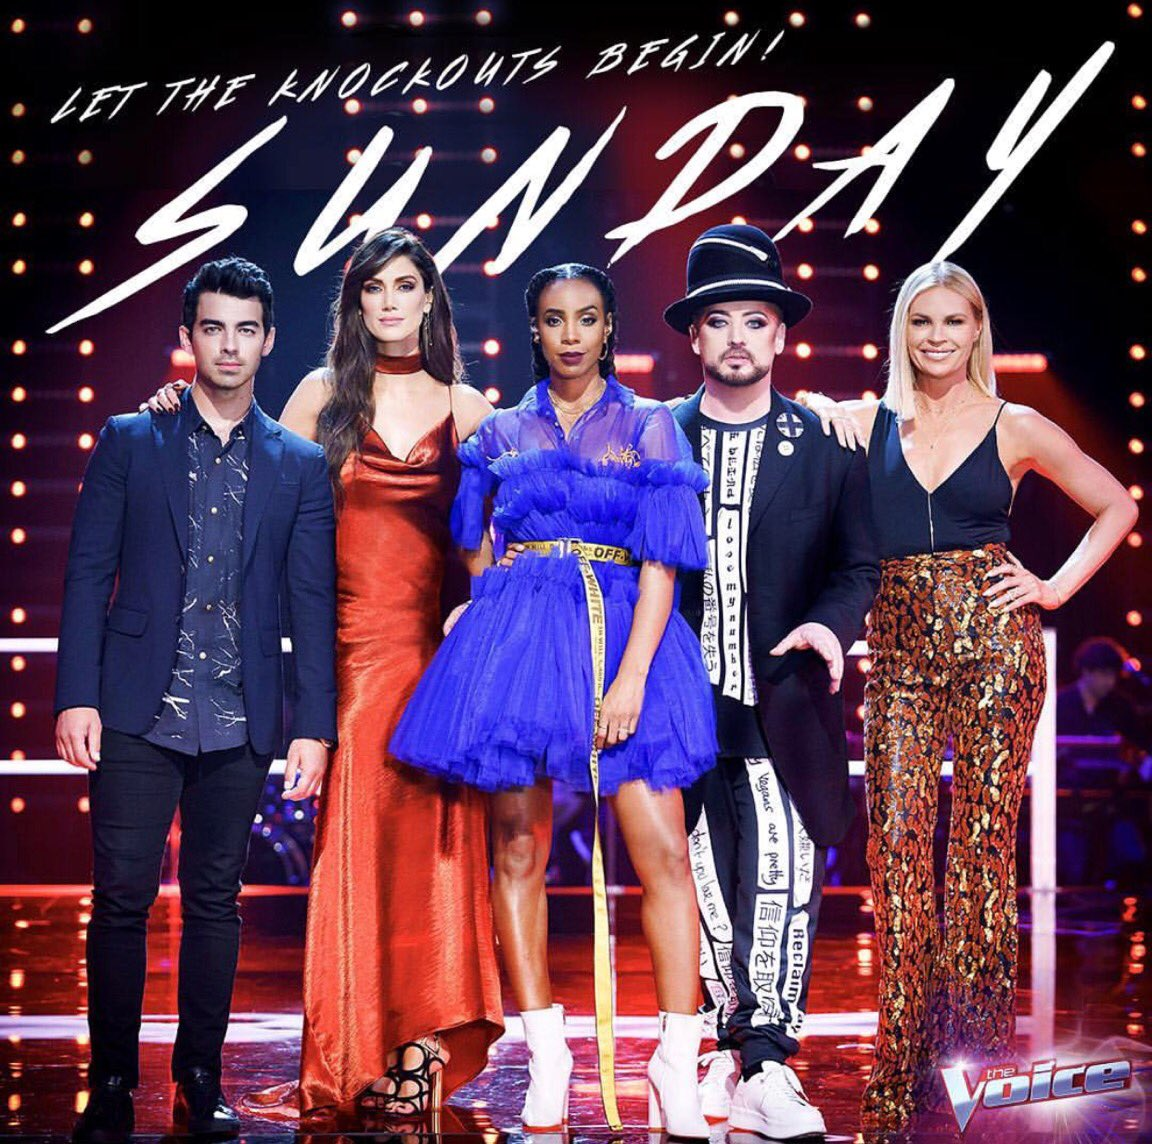 Knockouts start this Sunday at 7pm �� Let's go #TeamJoe ���� @thevoiceau https://t.co/sEXzbKBUou